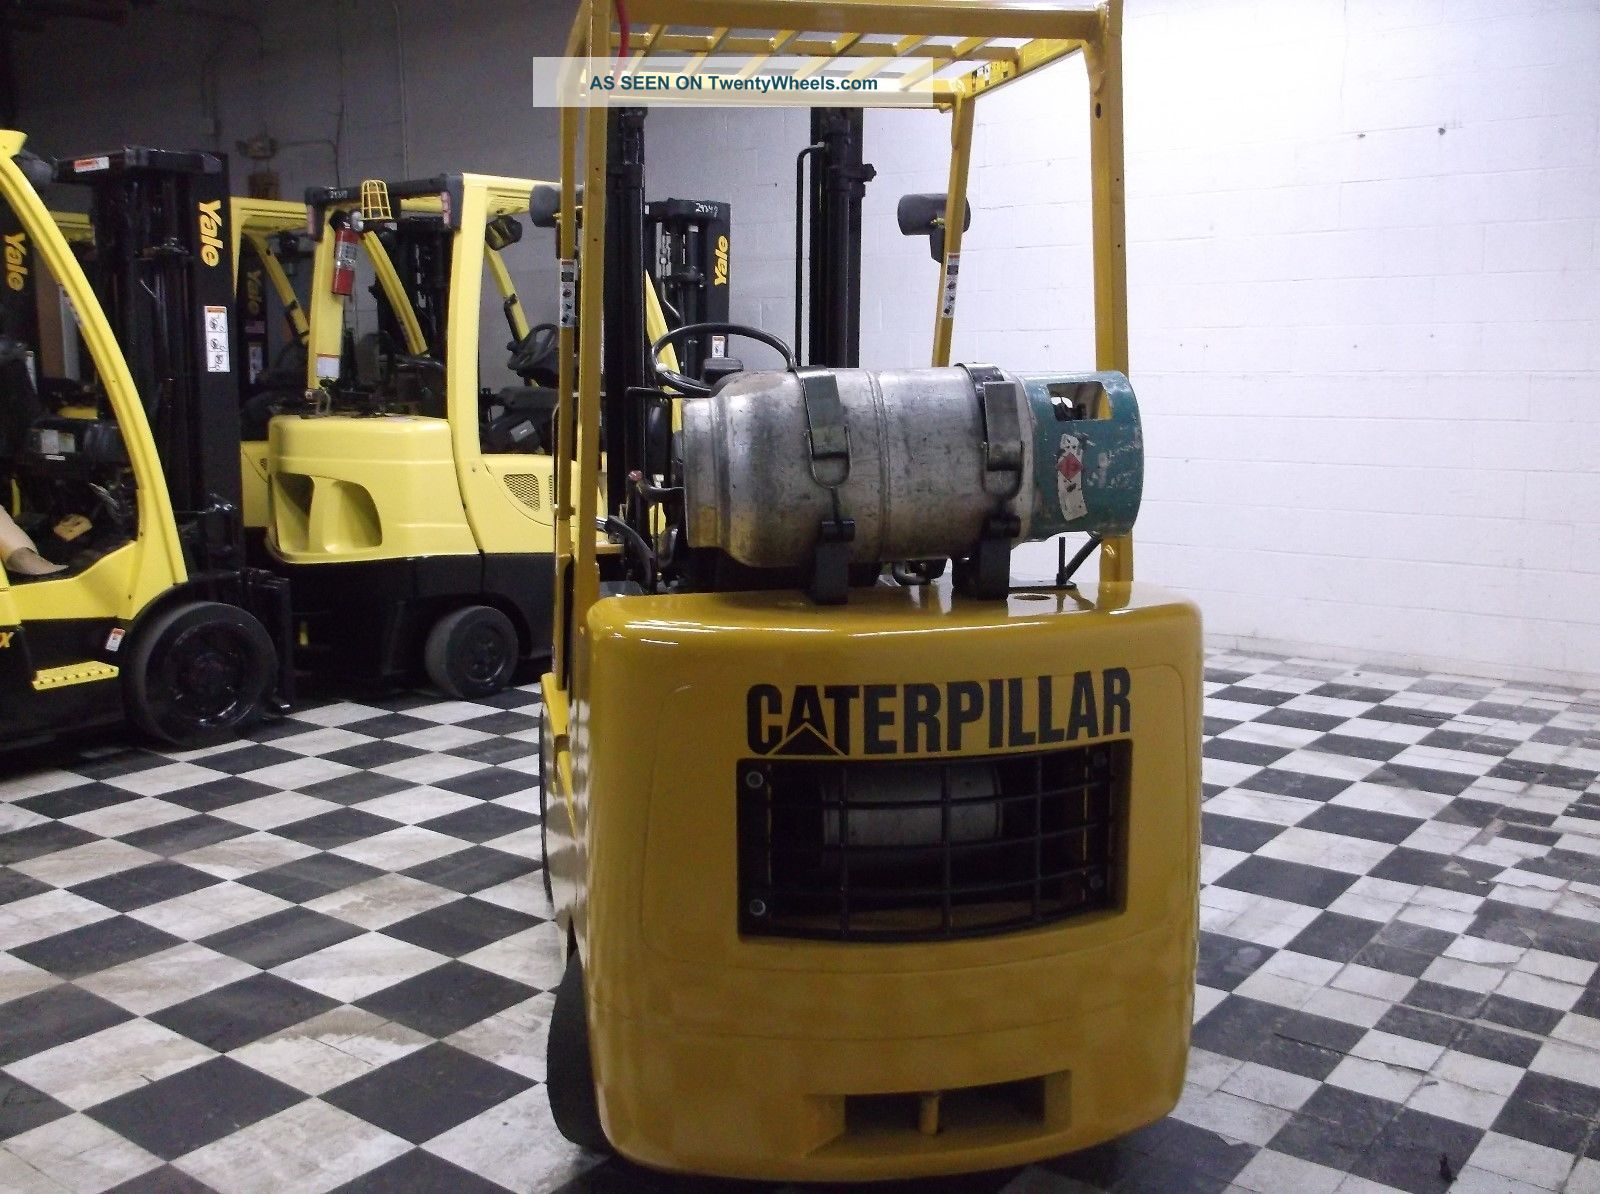 Caterpillar 5000 Lb Forklift Cushion Tires Side Shift